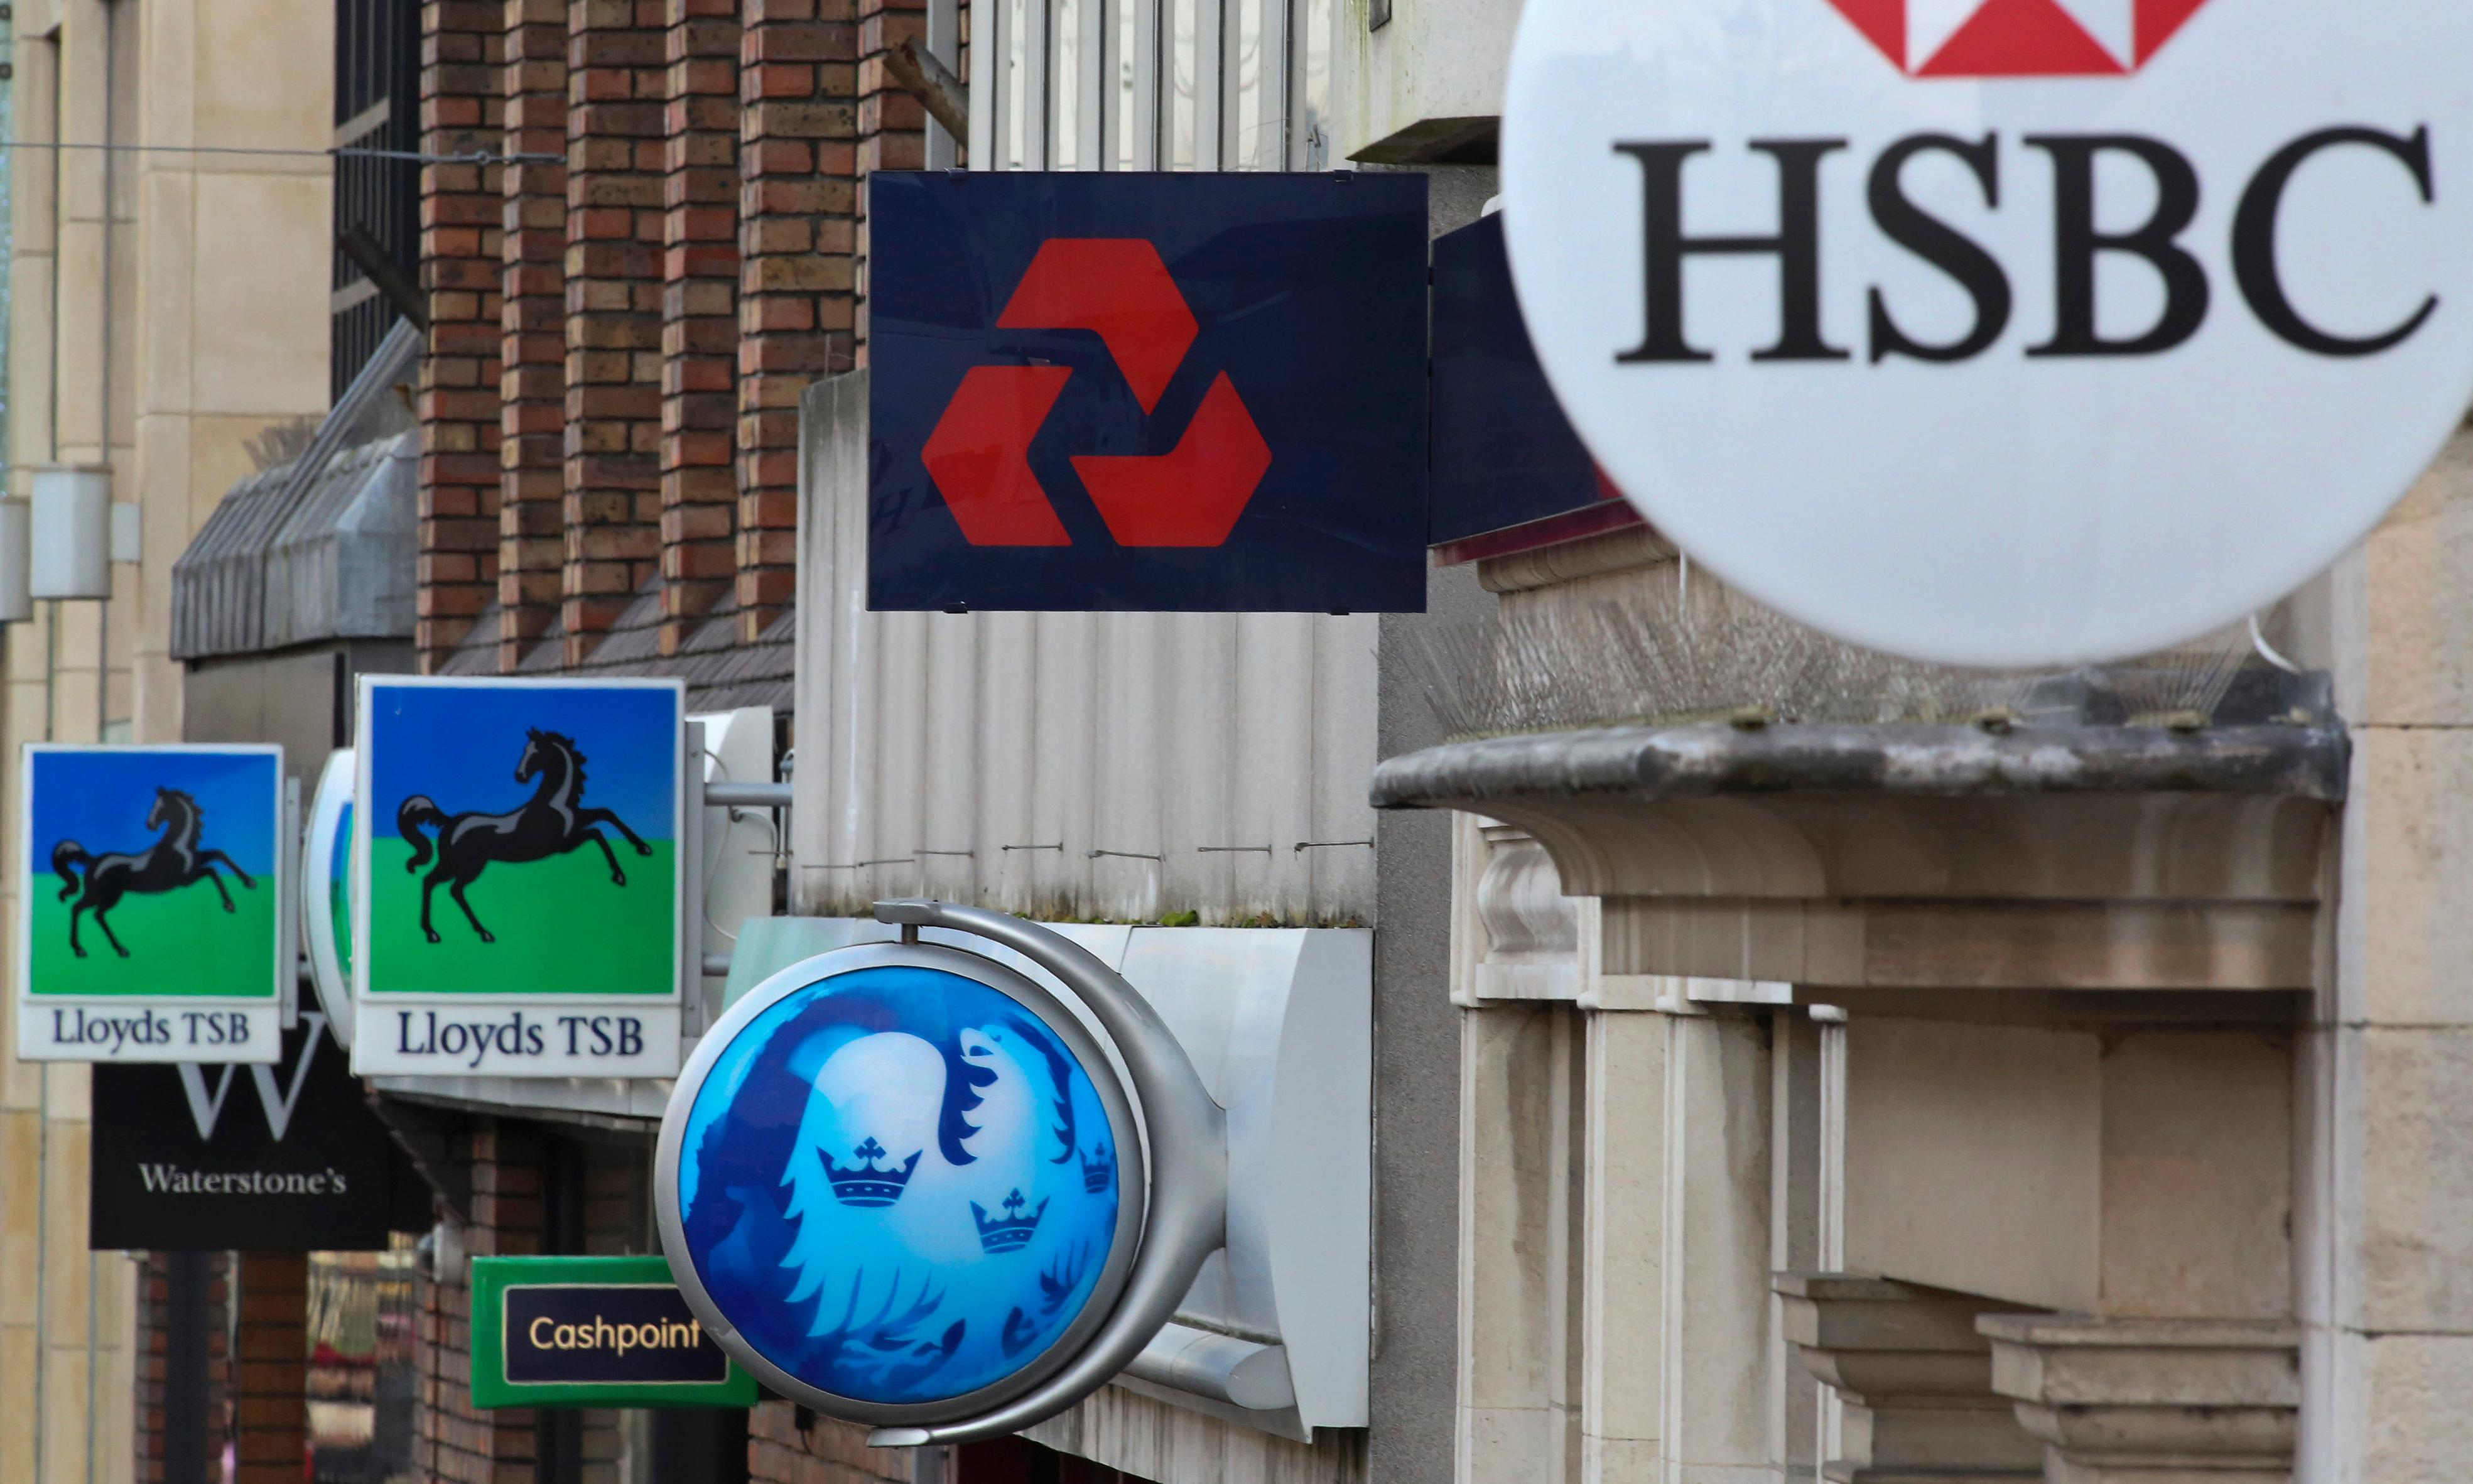 UK banks could face new multibillion-pound claims after PPI ruling